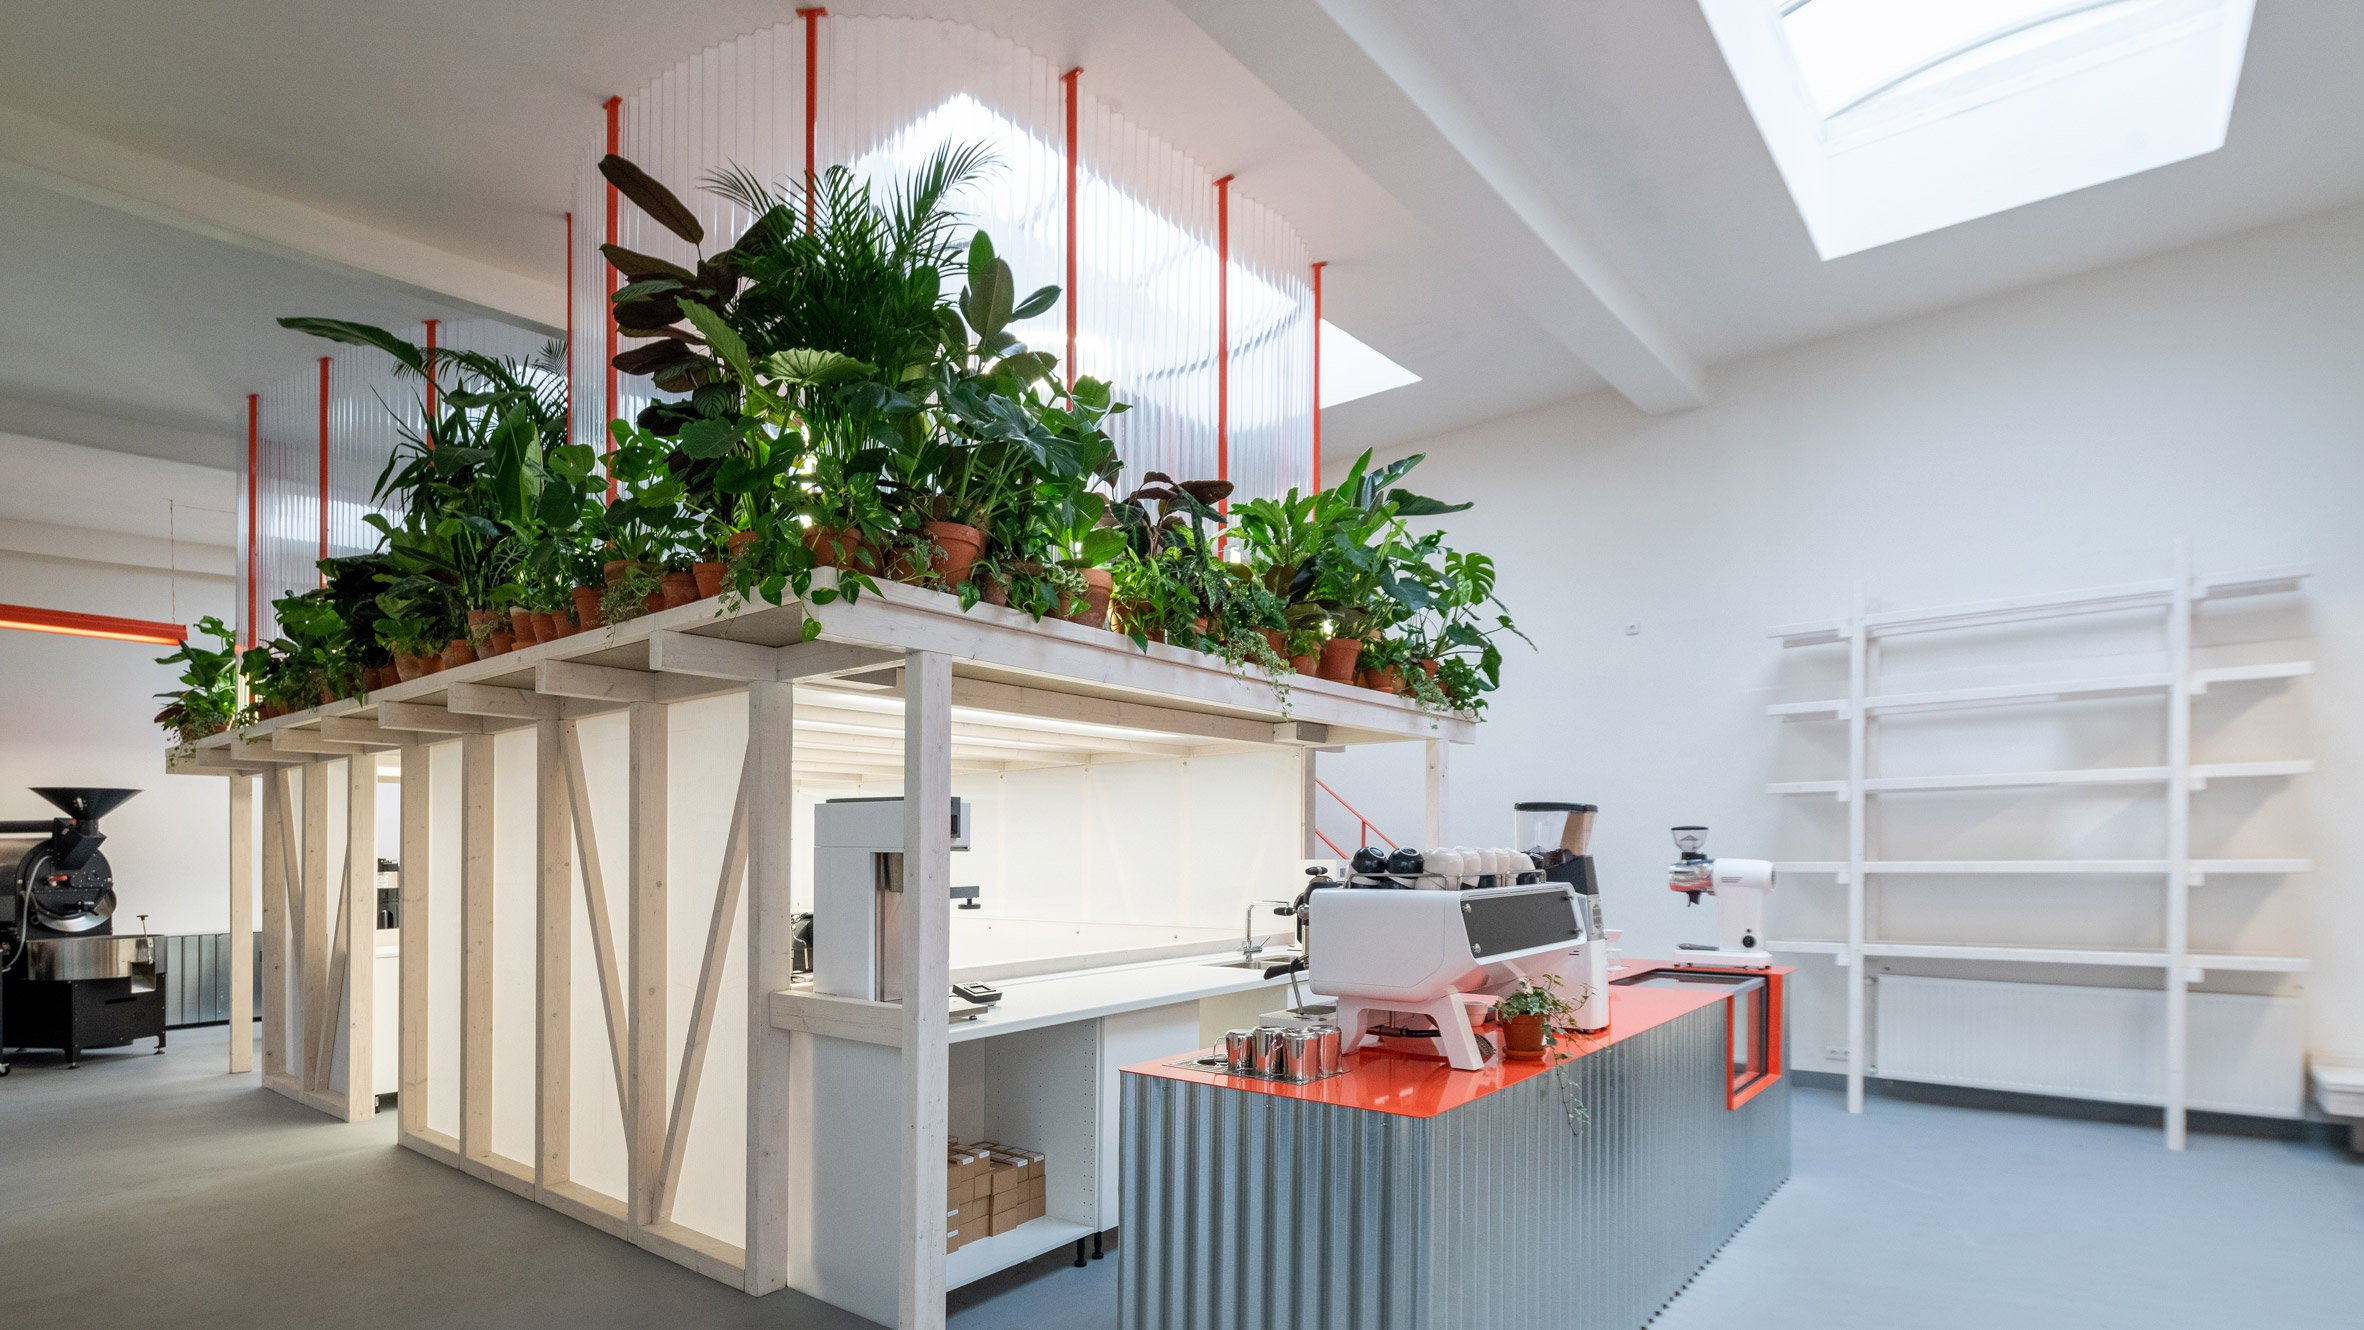 Plant-fringed mezzanine and corrugated metal counter of Grounds Coffee Hub